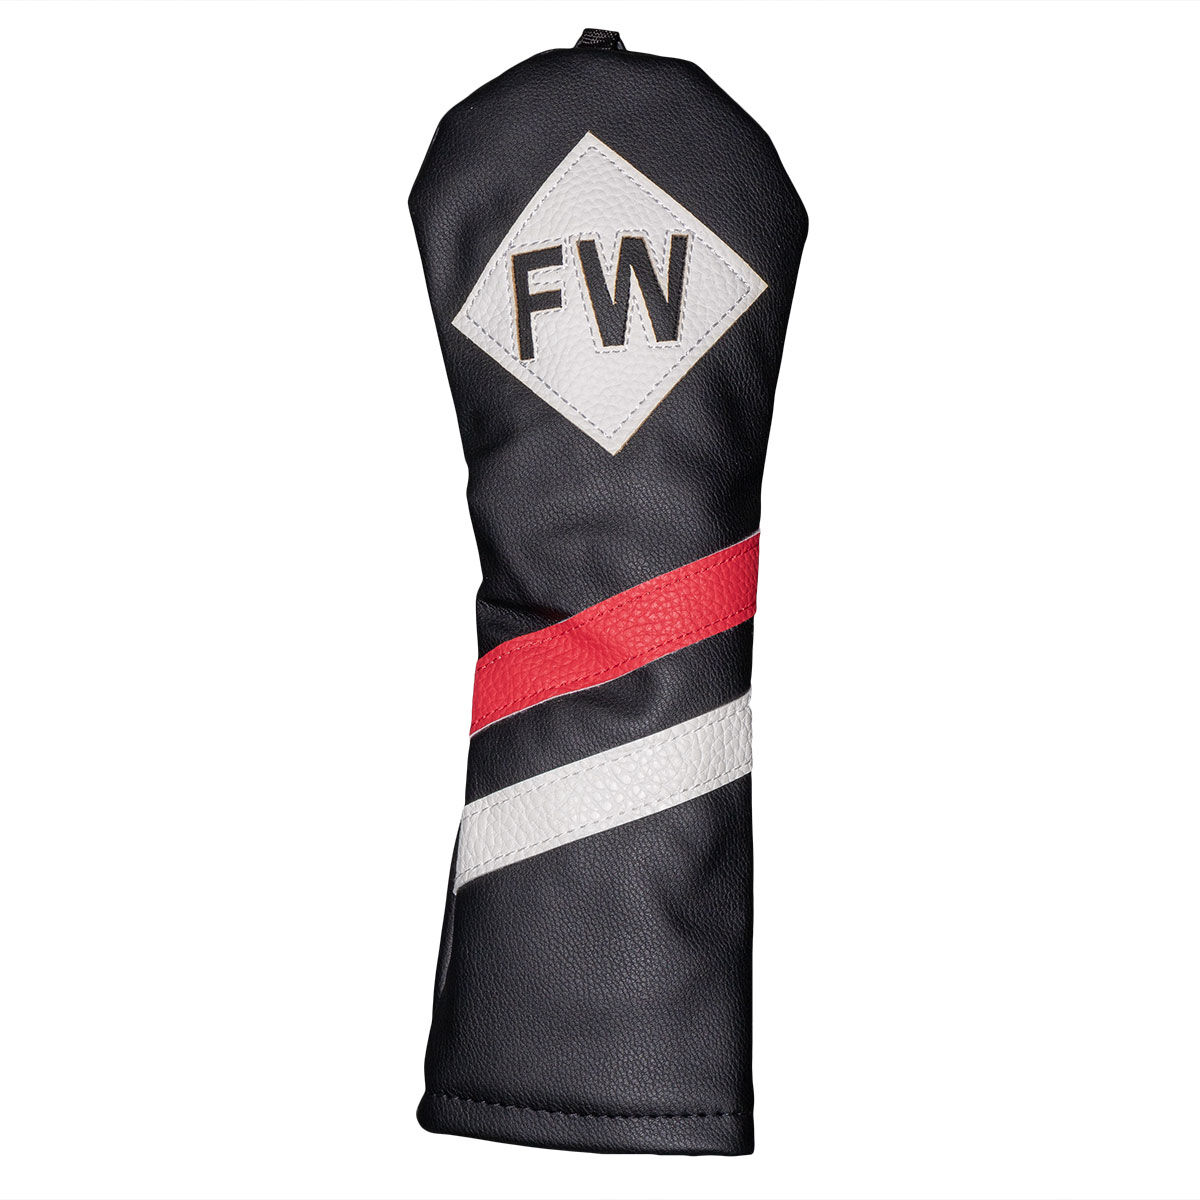 Fazer Black, White and Red Adjustable Vintage Golf Fairway Head Cover, One size | American Golf